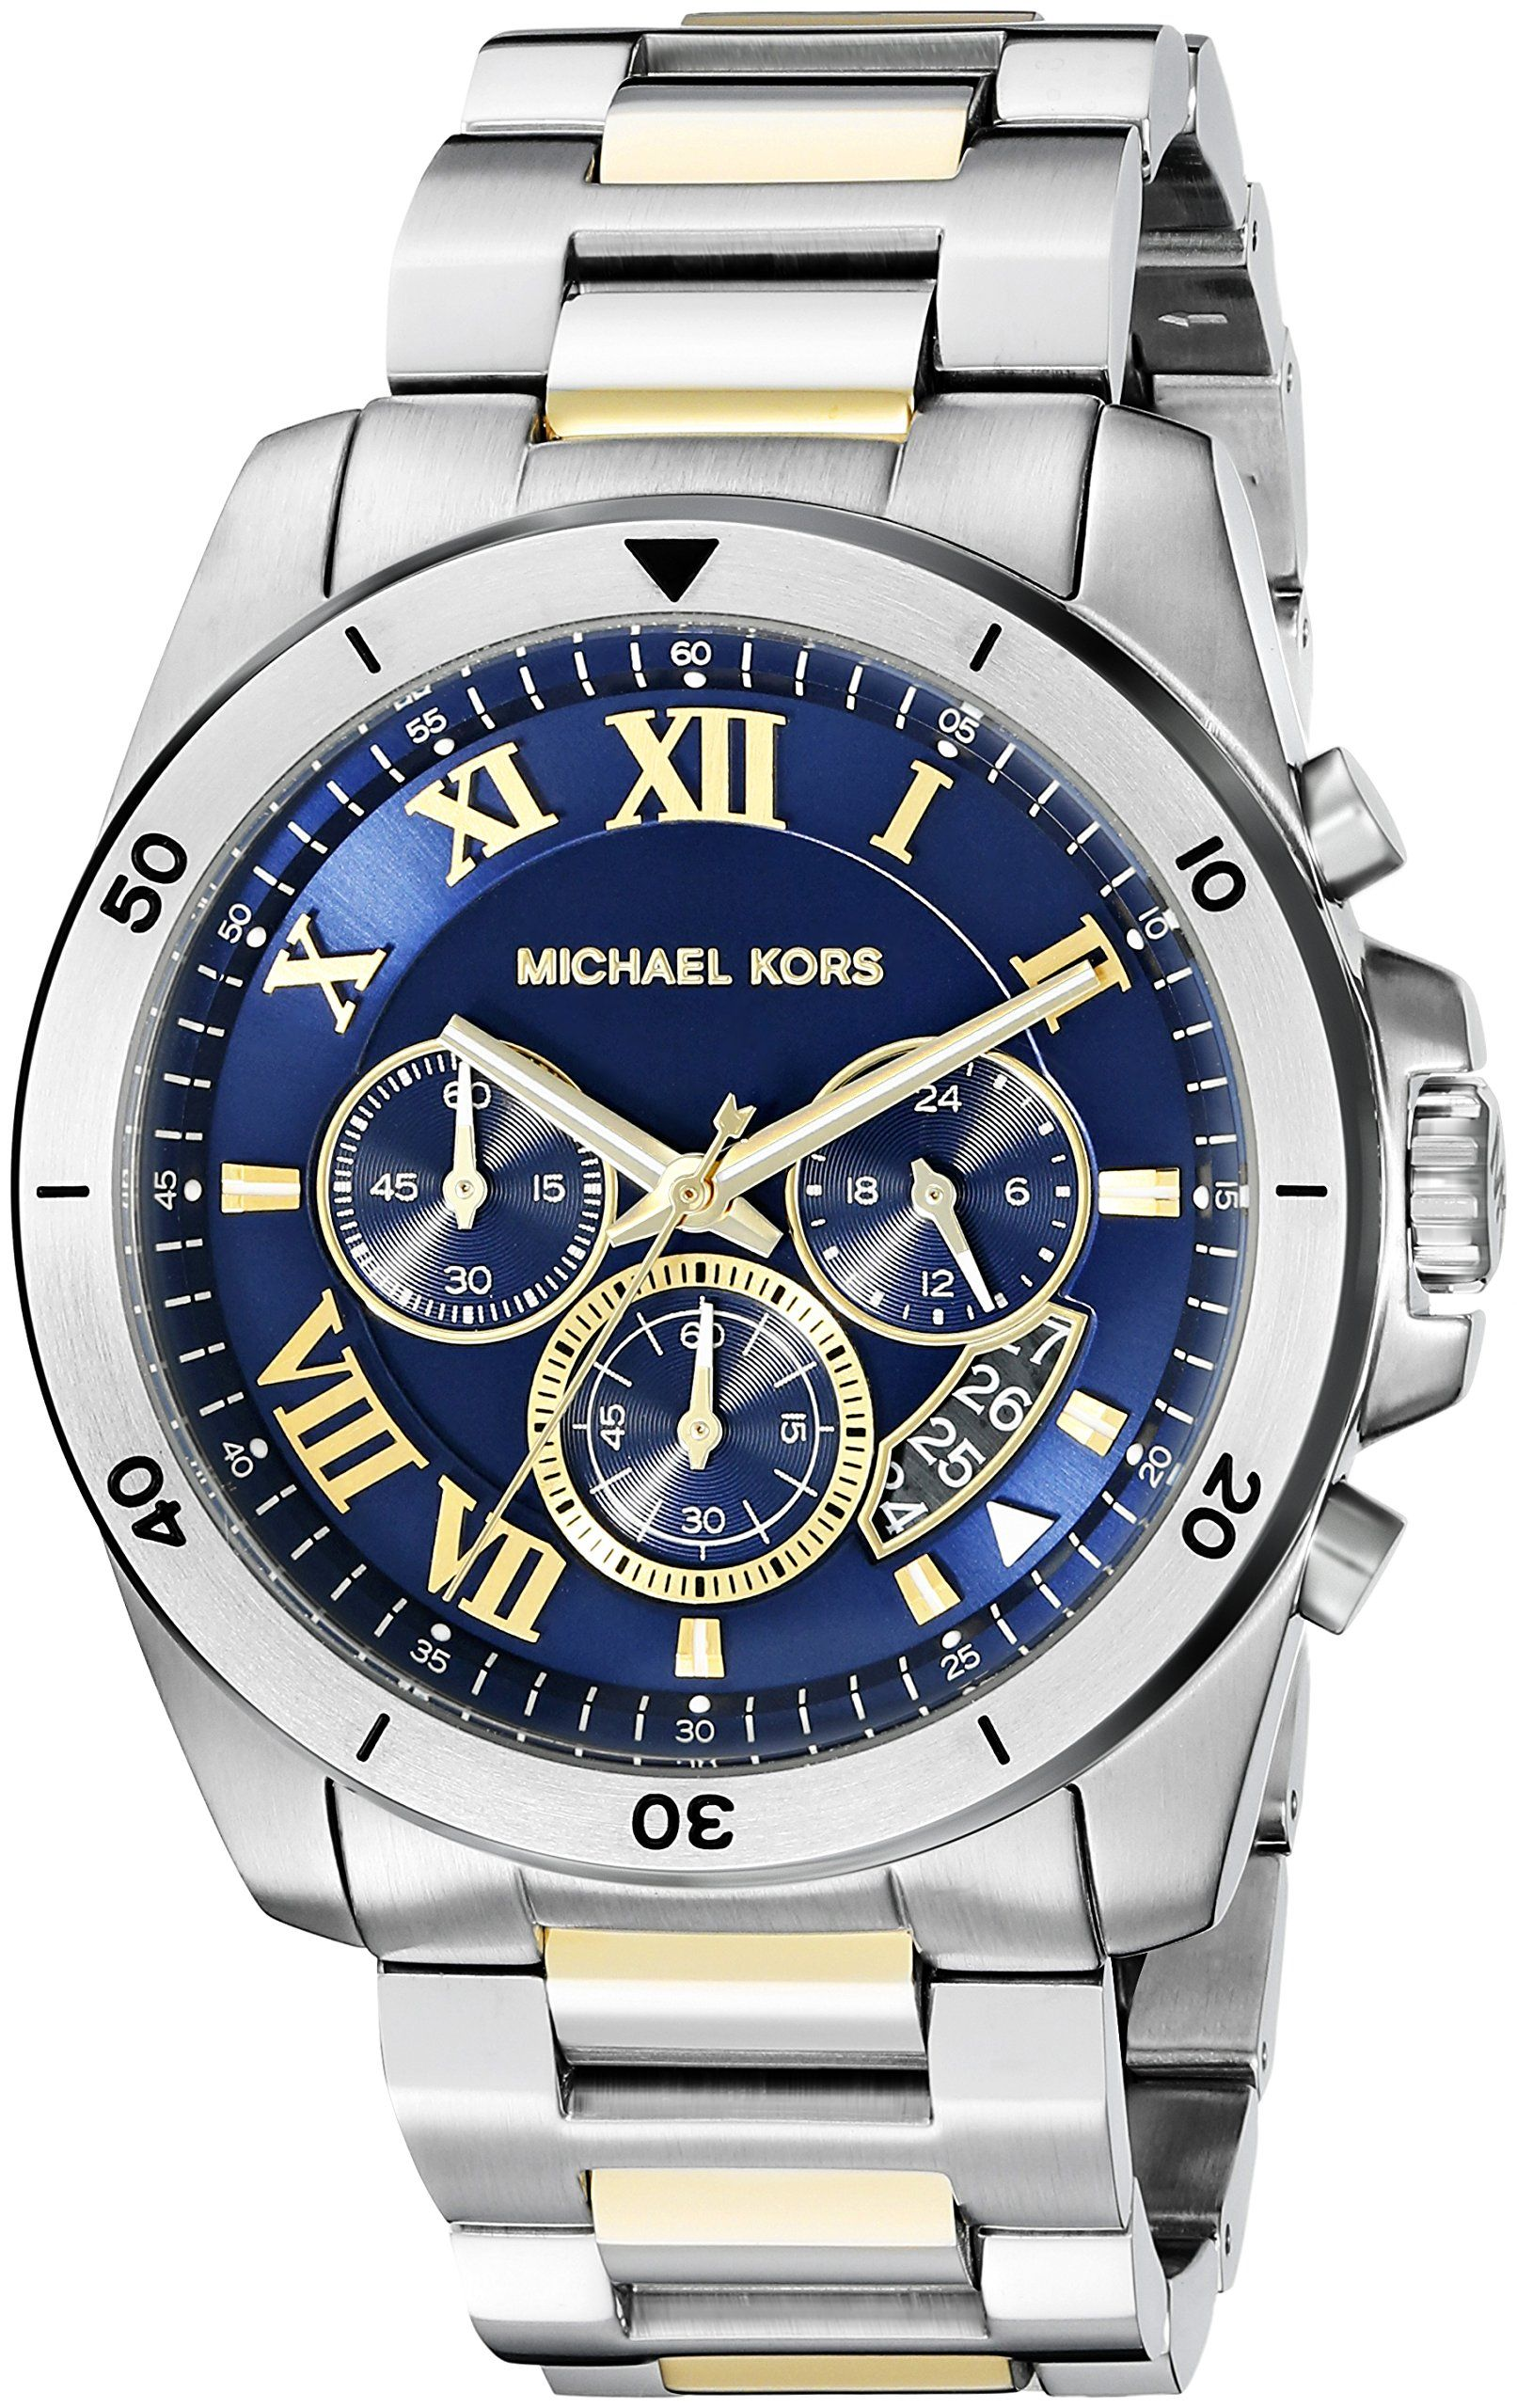 7ce029dfe Michael Kors Men's Brecken Two-Tone Watch MK8437 | Watches | Watches ...